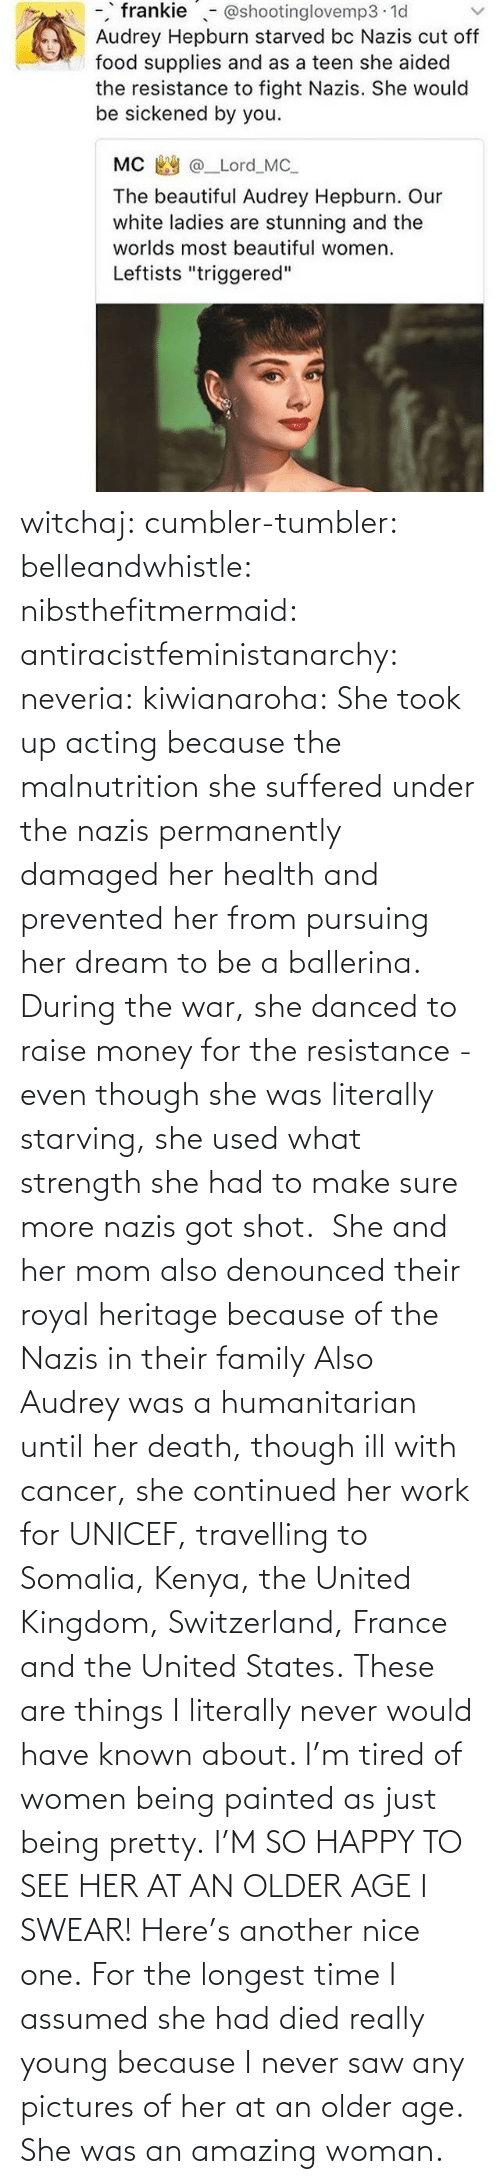 Pictures: witchaj: cumbler-tumbler:  belleandwhistle:  nibsthefitmermaid:  antiracistfeministanarchy:  neveria:  kiwianaroha: She took up acting because the malnutrition she suffered under the nazis permanently damaged her health and prevented her from pursuing her dream to be a ballerina. During the war, she danced to raise money for the resistance - even though she was literally starving, she used what strength she had to make sure more nazis got shot.  She and her mom also denounced their royal heritage because of the Nazis in their family  Also Audrey was a humanitarian until her death, though ill with cancer, she continued her work for UNICEF, travelling to Somalia, Kenya, the United Kingdom, Switzerland, France and the United States.  These are things I literally never would have known about. I'm tired of women being painted as just being pretty.  I'M SO HAPPY TO SEE HER AT AN OLDER AGE I SWEAR!  Here's another nice one.   For the longest time I assumed she had died really young because I never saw any pictures of her at an older age.  She was an amazing woman.